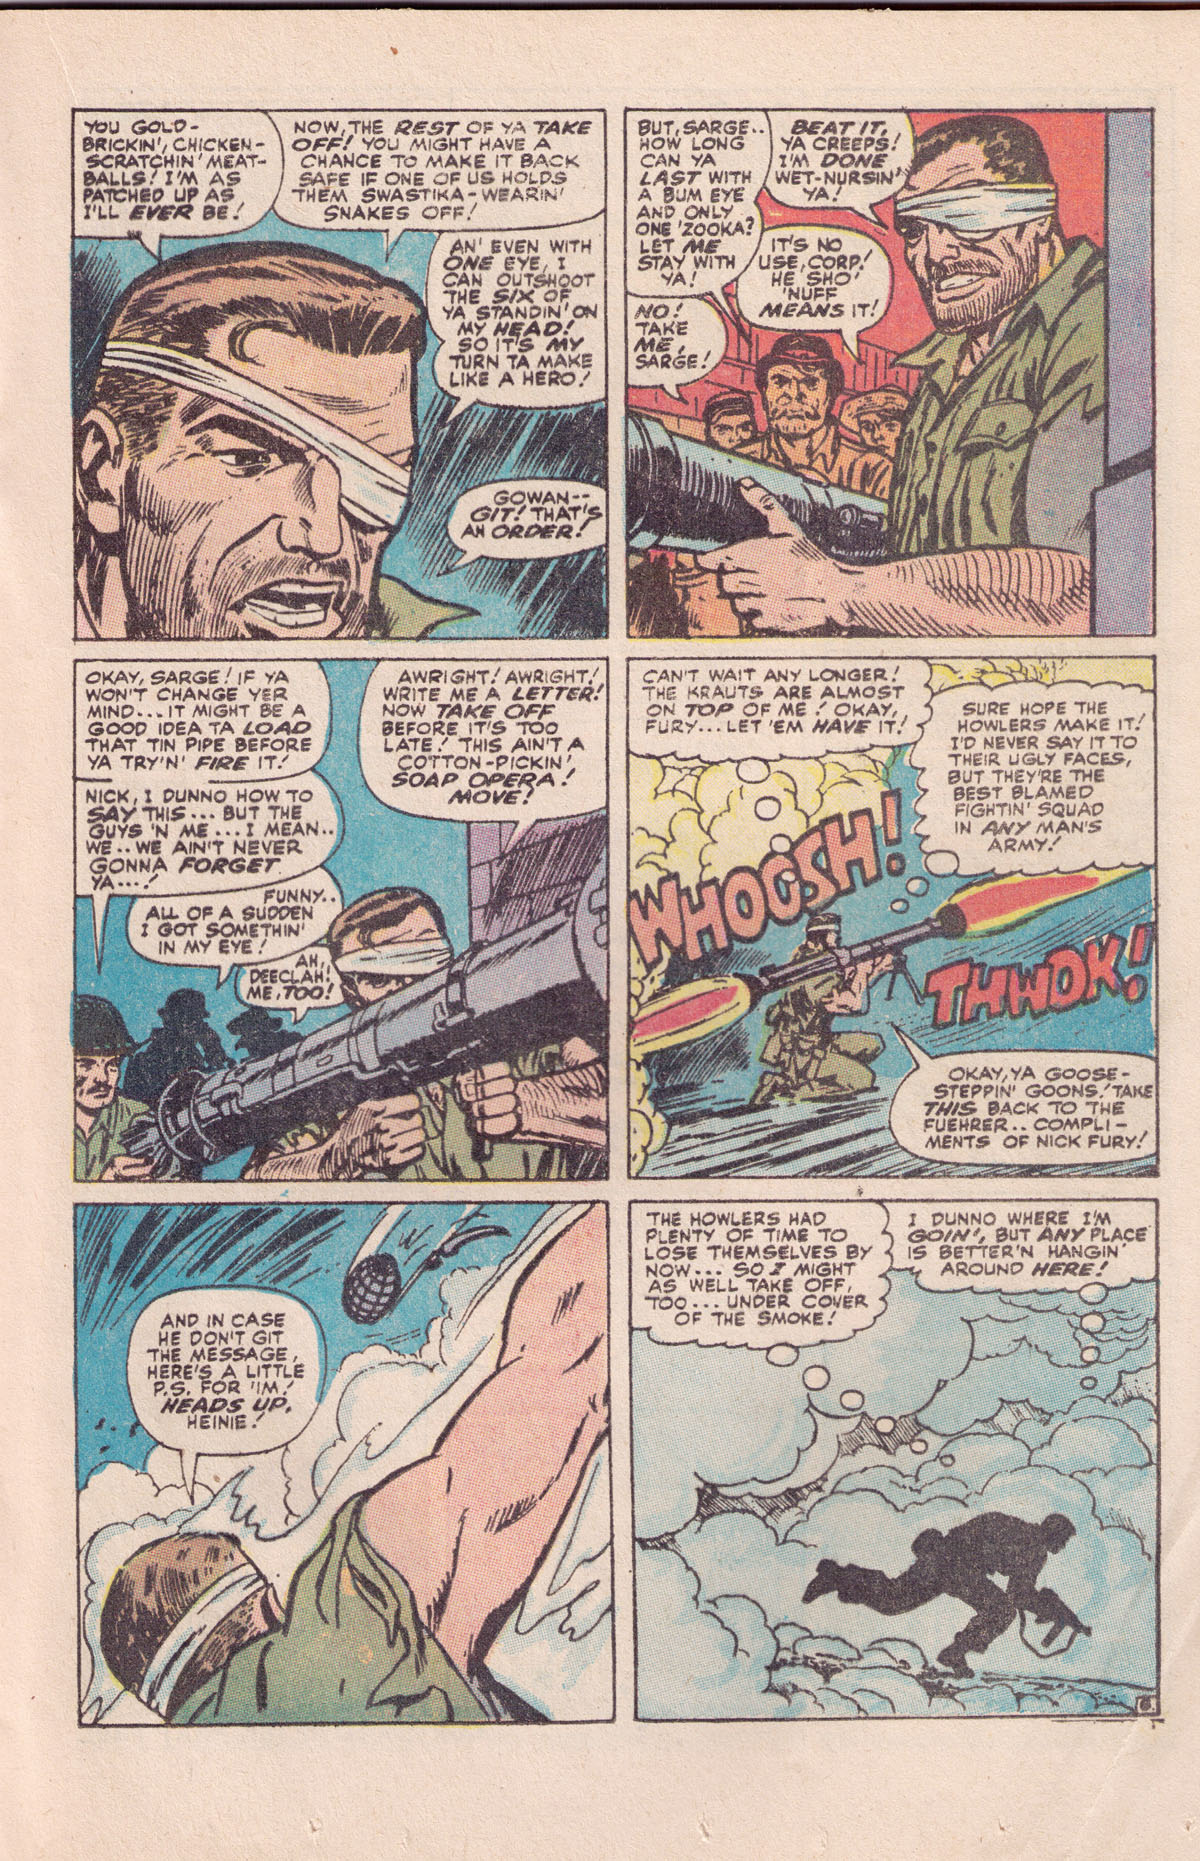 Read online Sgt. Fury comic -  Issue #89 - 13